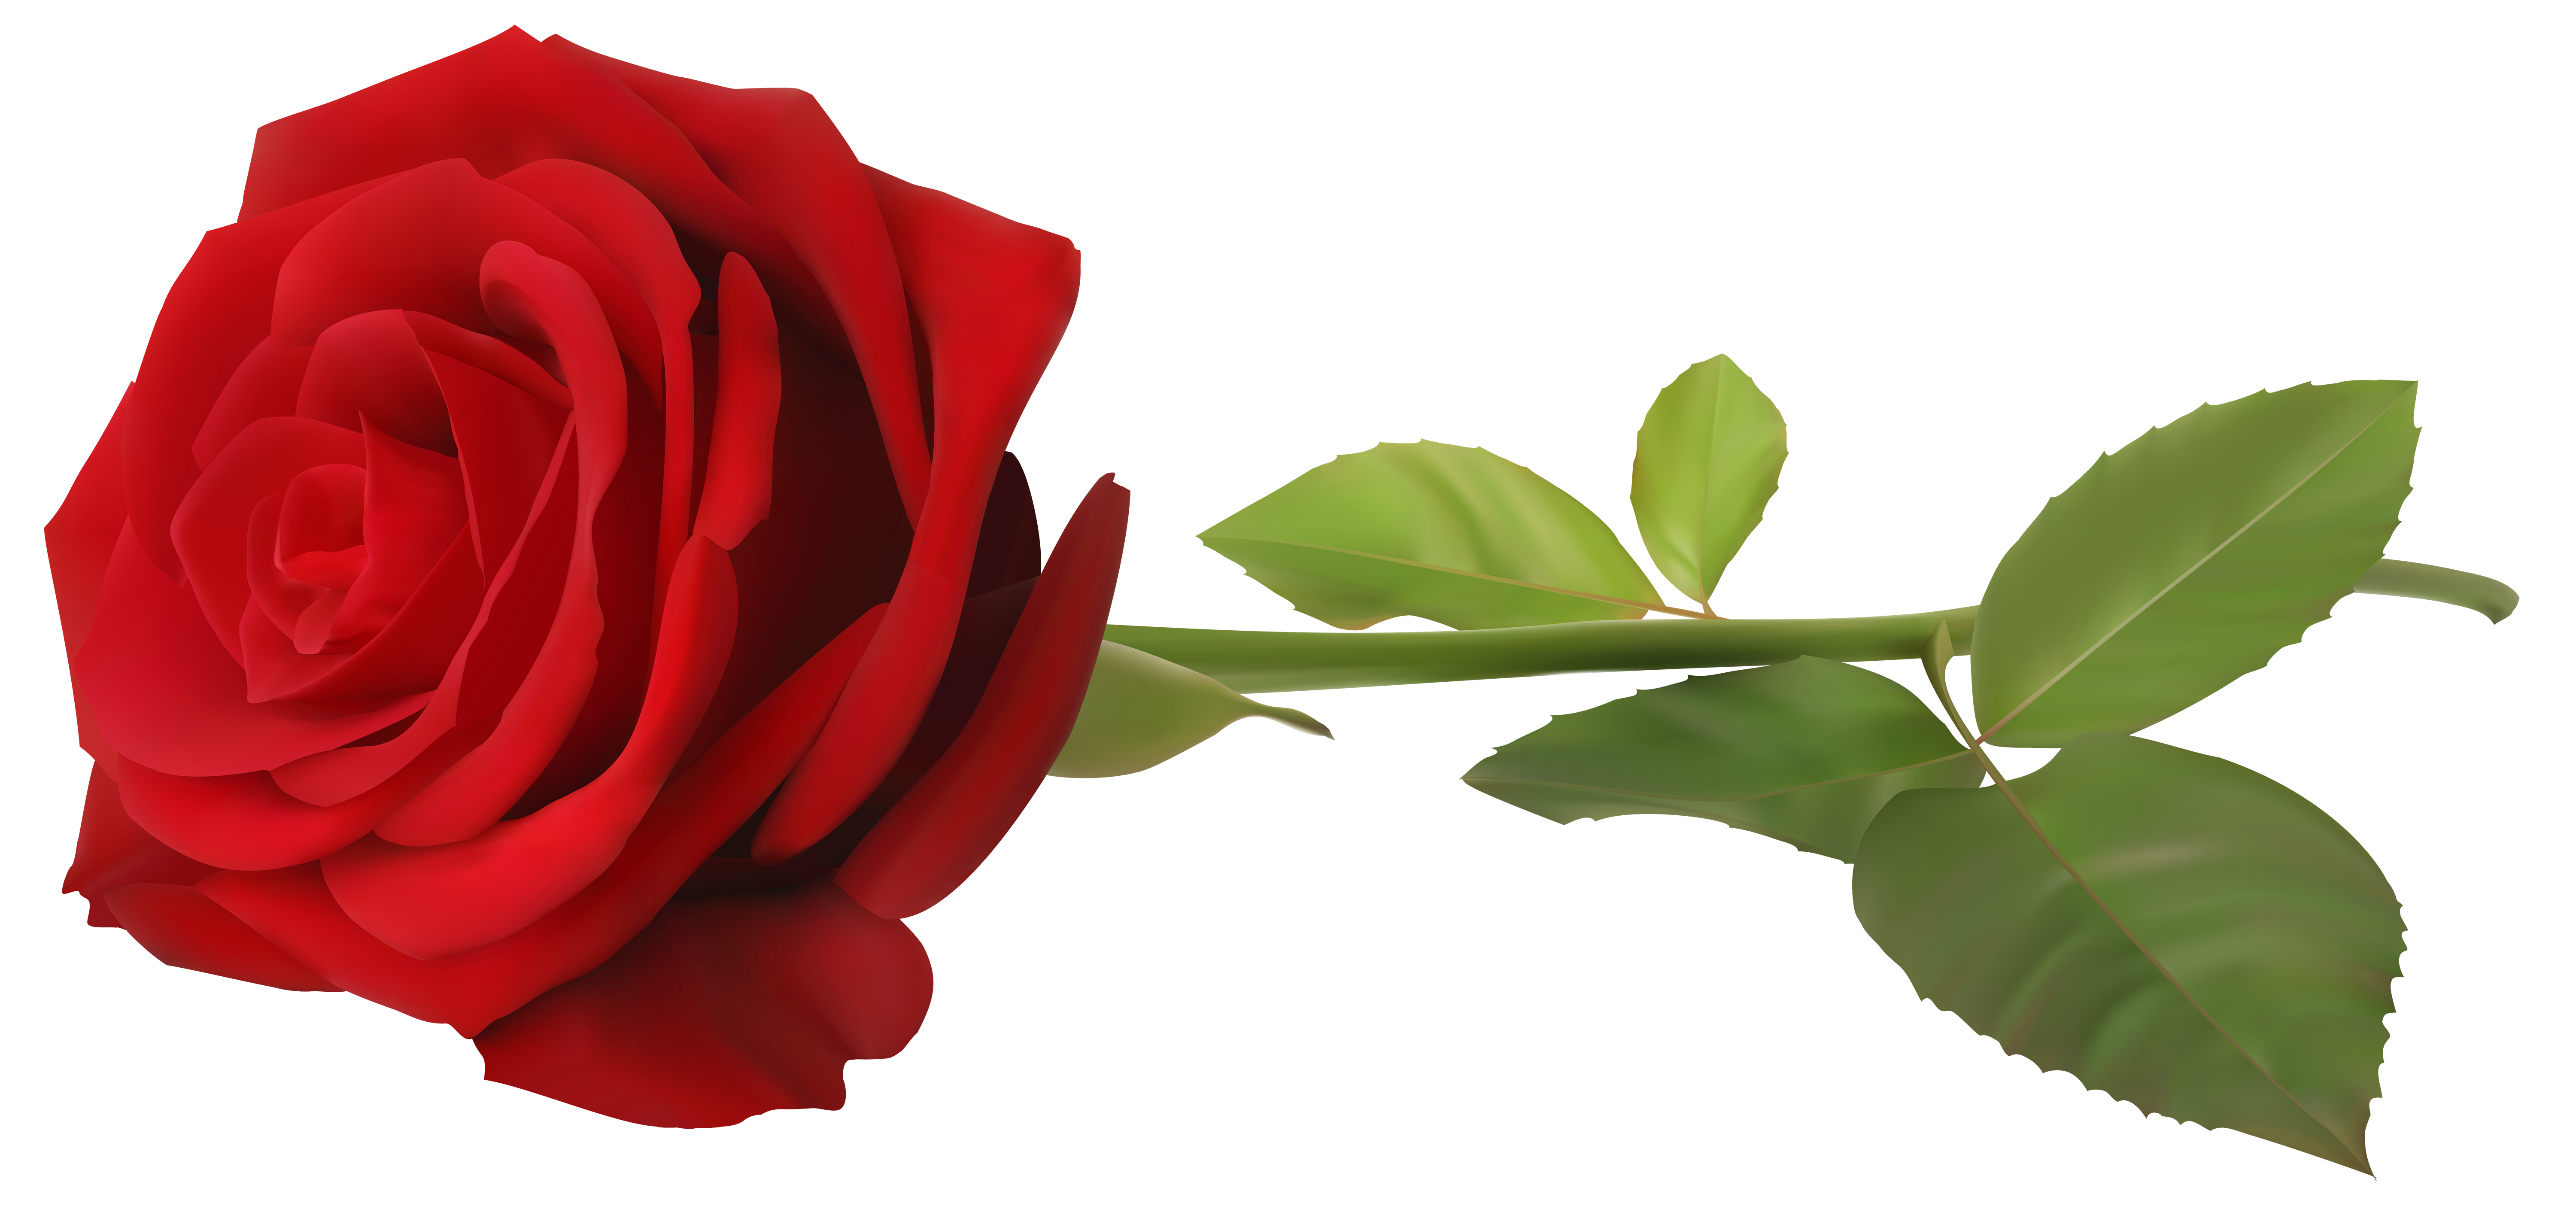 Clipart roses curved. Red rose with stem